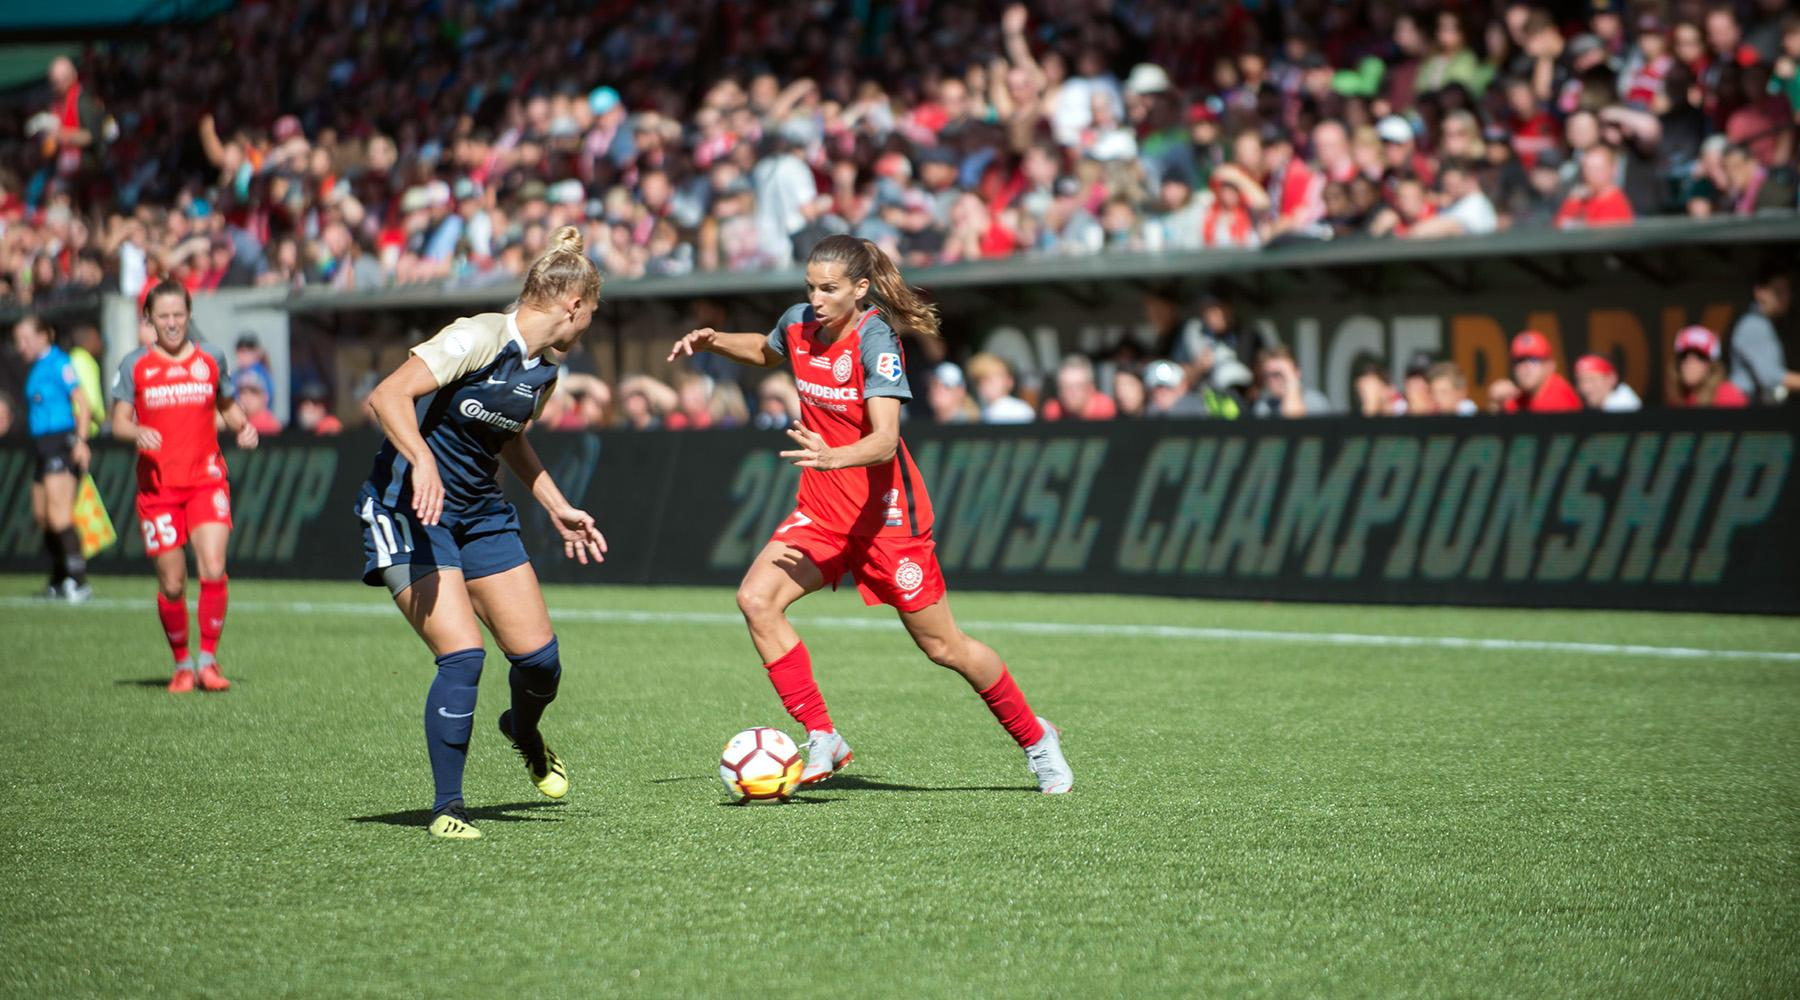 Looking to defend their 2017 title, the Portland Thorns played the North Carolina Courage Saturday in the 2018 National Women's Soccer League championship in front of a sold-out crowd at Providence Park. After a hard-fought match, the Courage took a 3-0 victory over the Thorns, becoming the 2018 champs. (KATU photo by Tristan Fortsch on September 22, 2018)